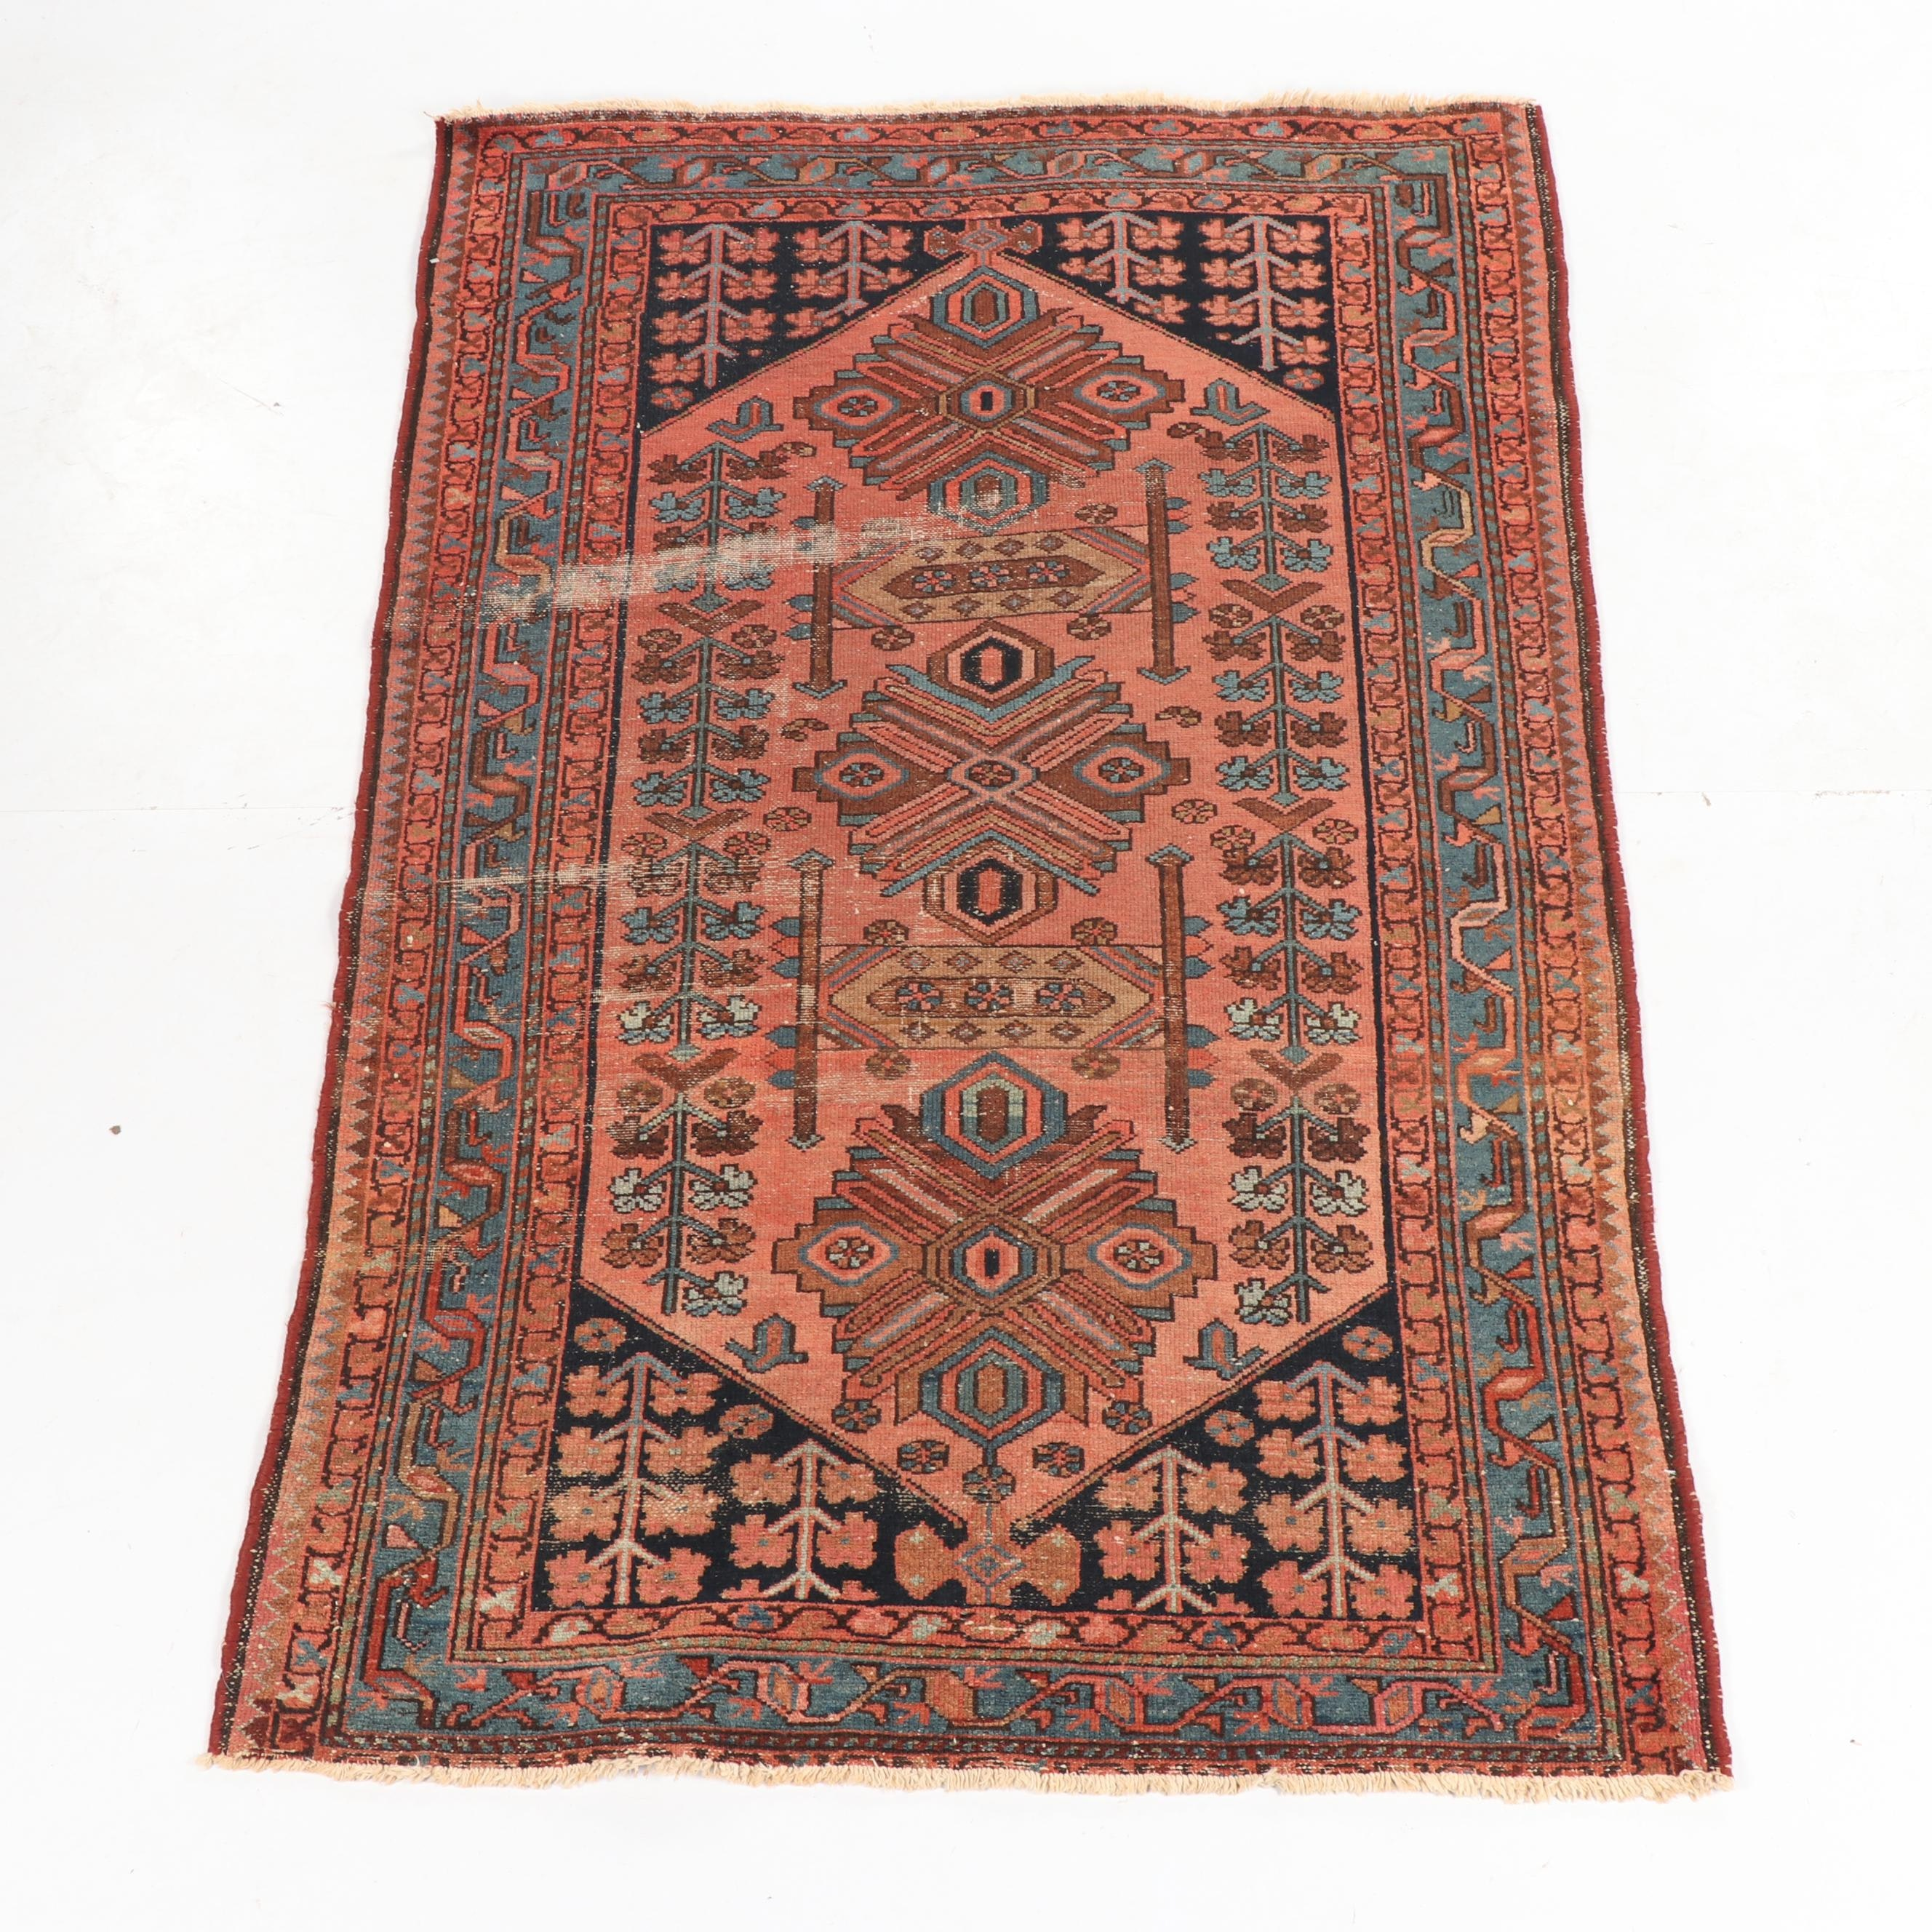 Antique Hand-Knotted Persian Bakshaish Wool Rug